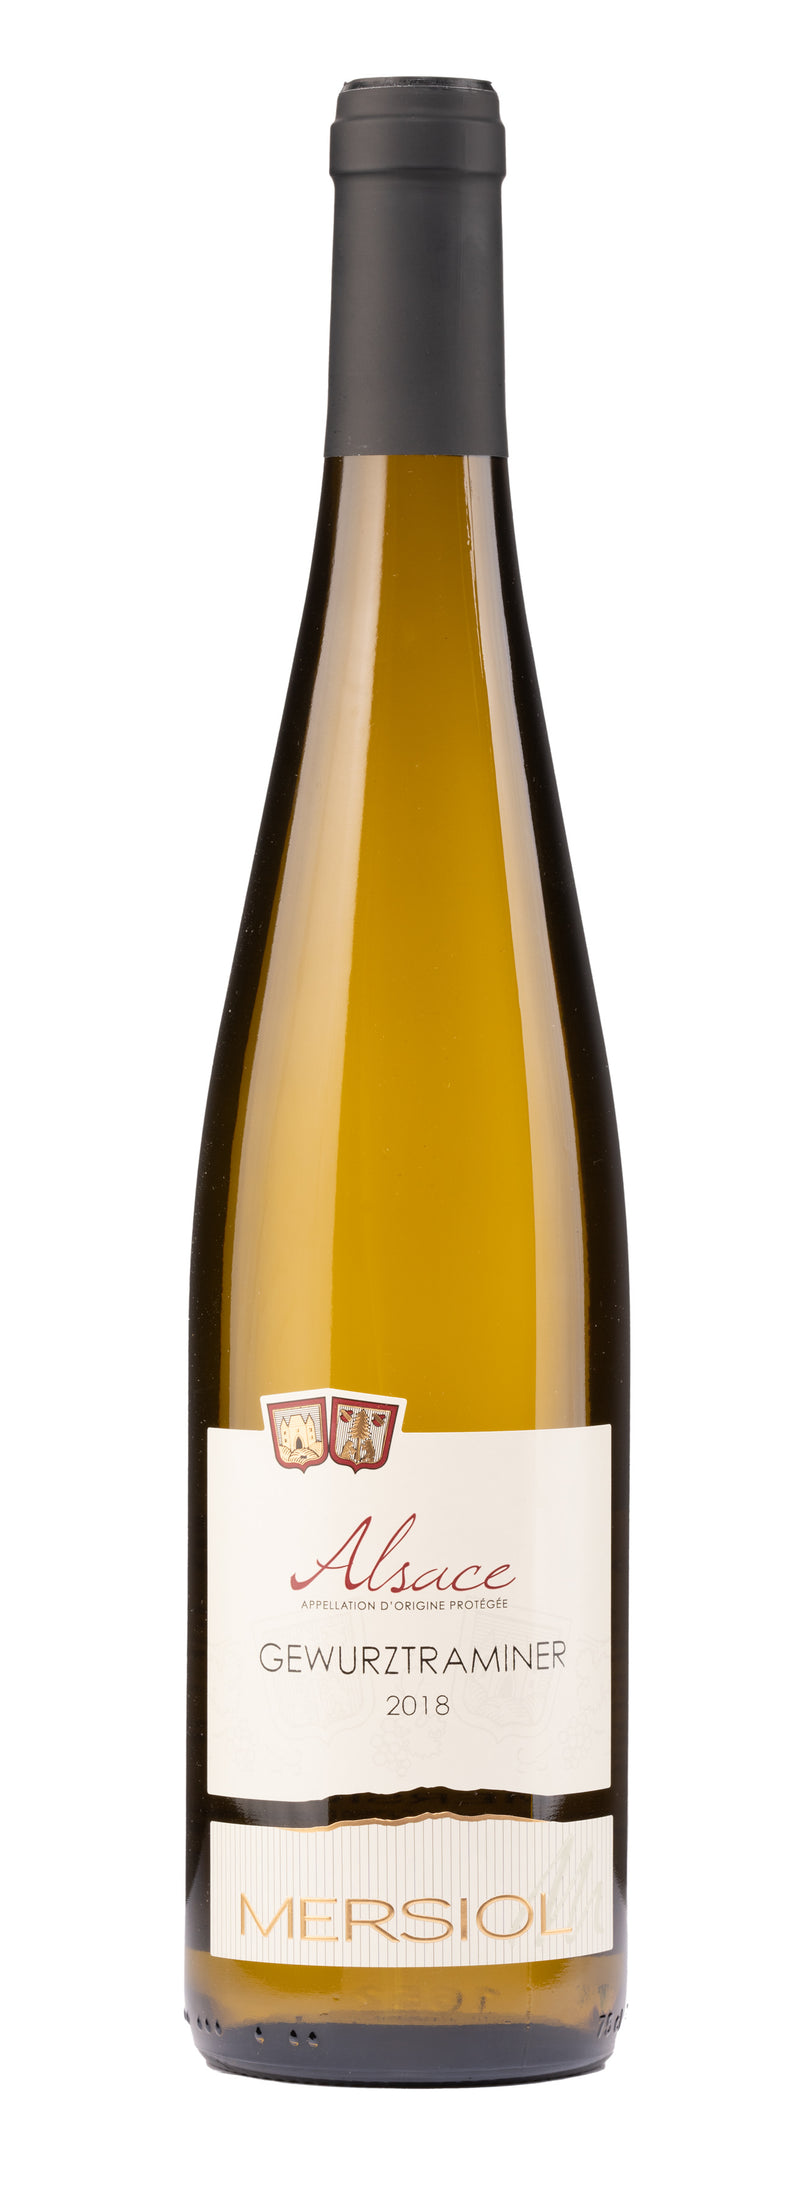 Domaine Mersiol - Gewurztraminer